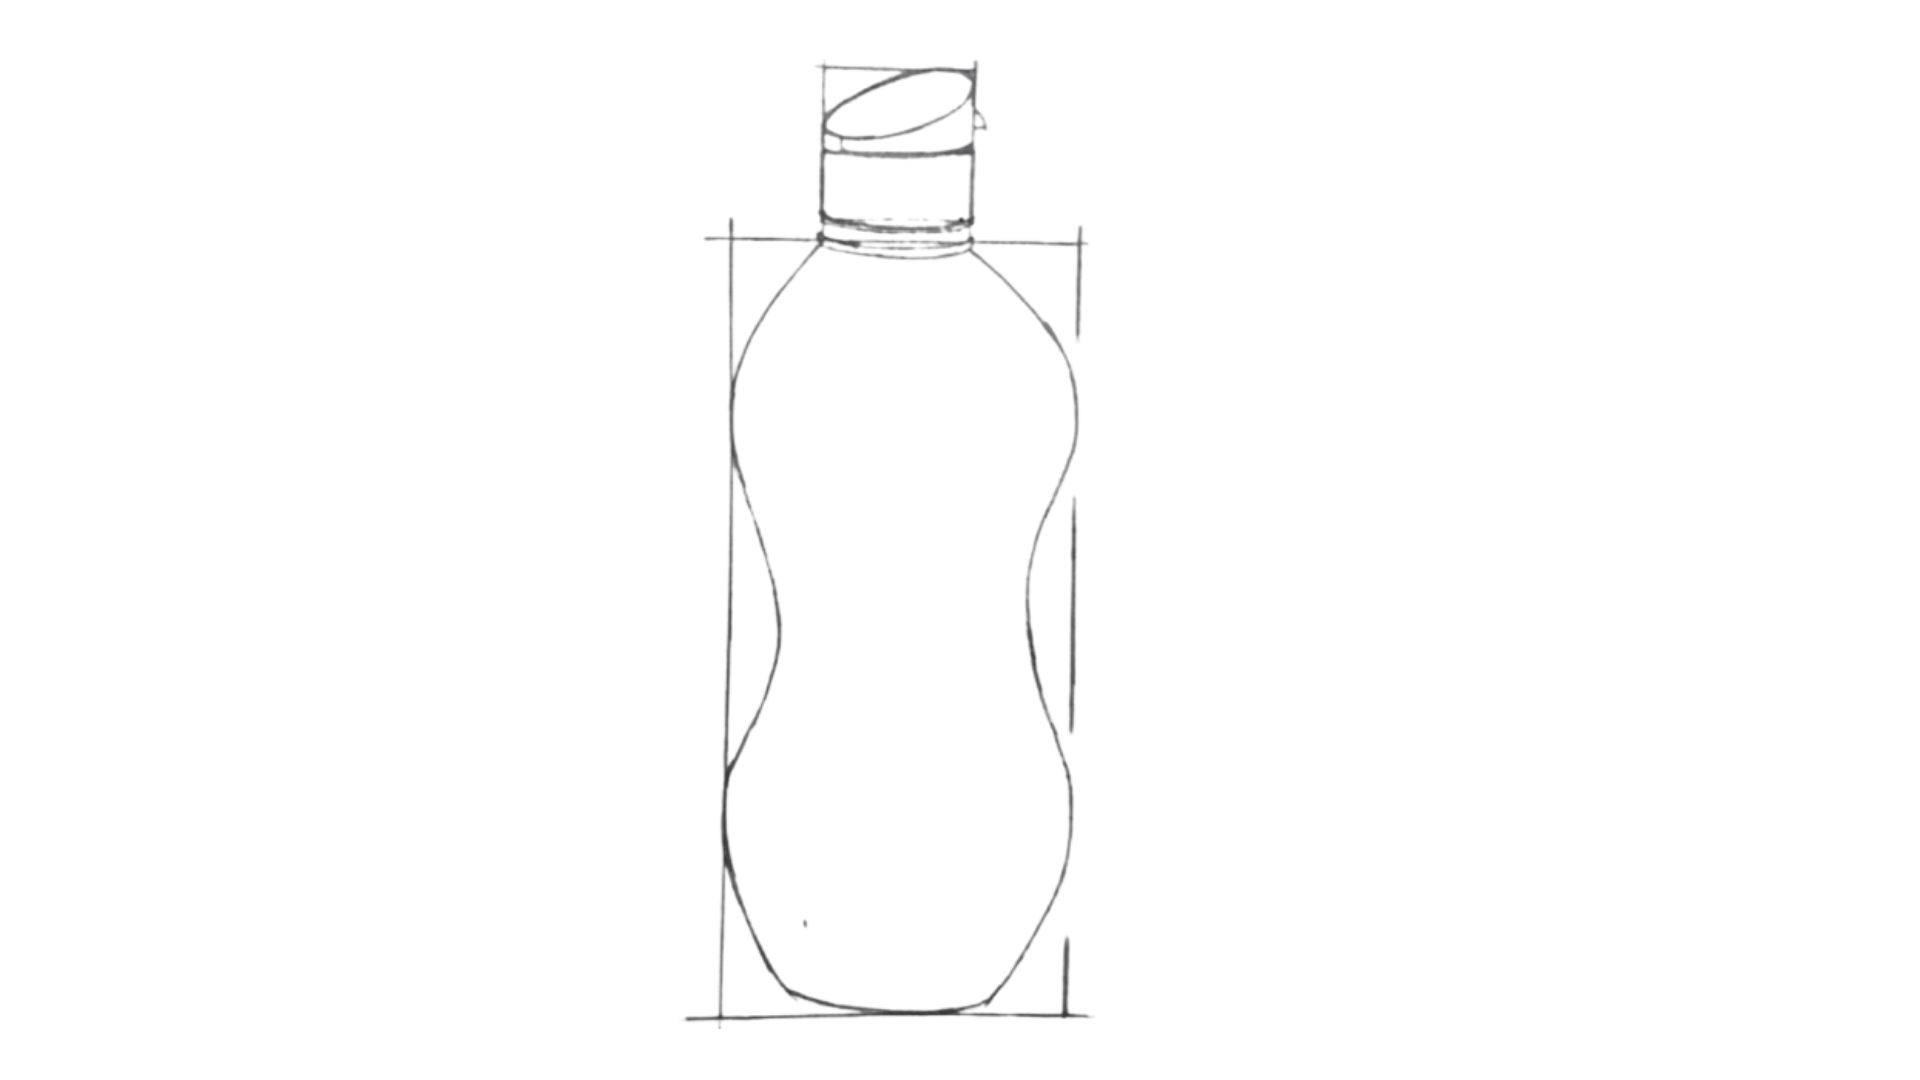 How To Draw a Bottle Step 3